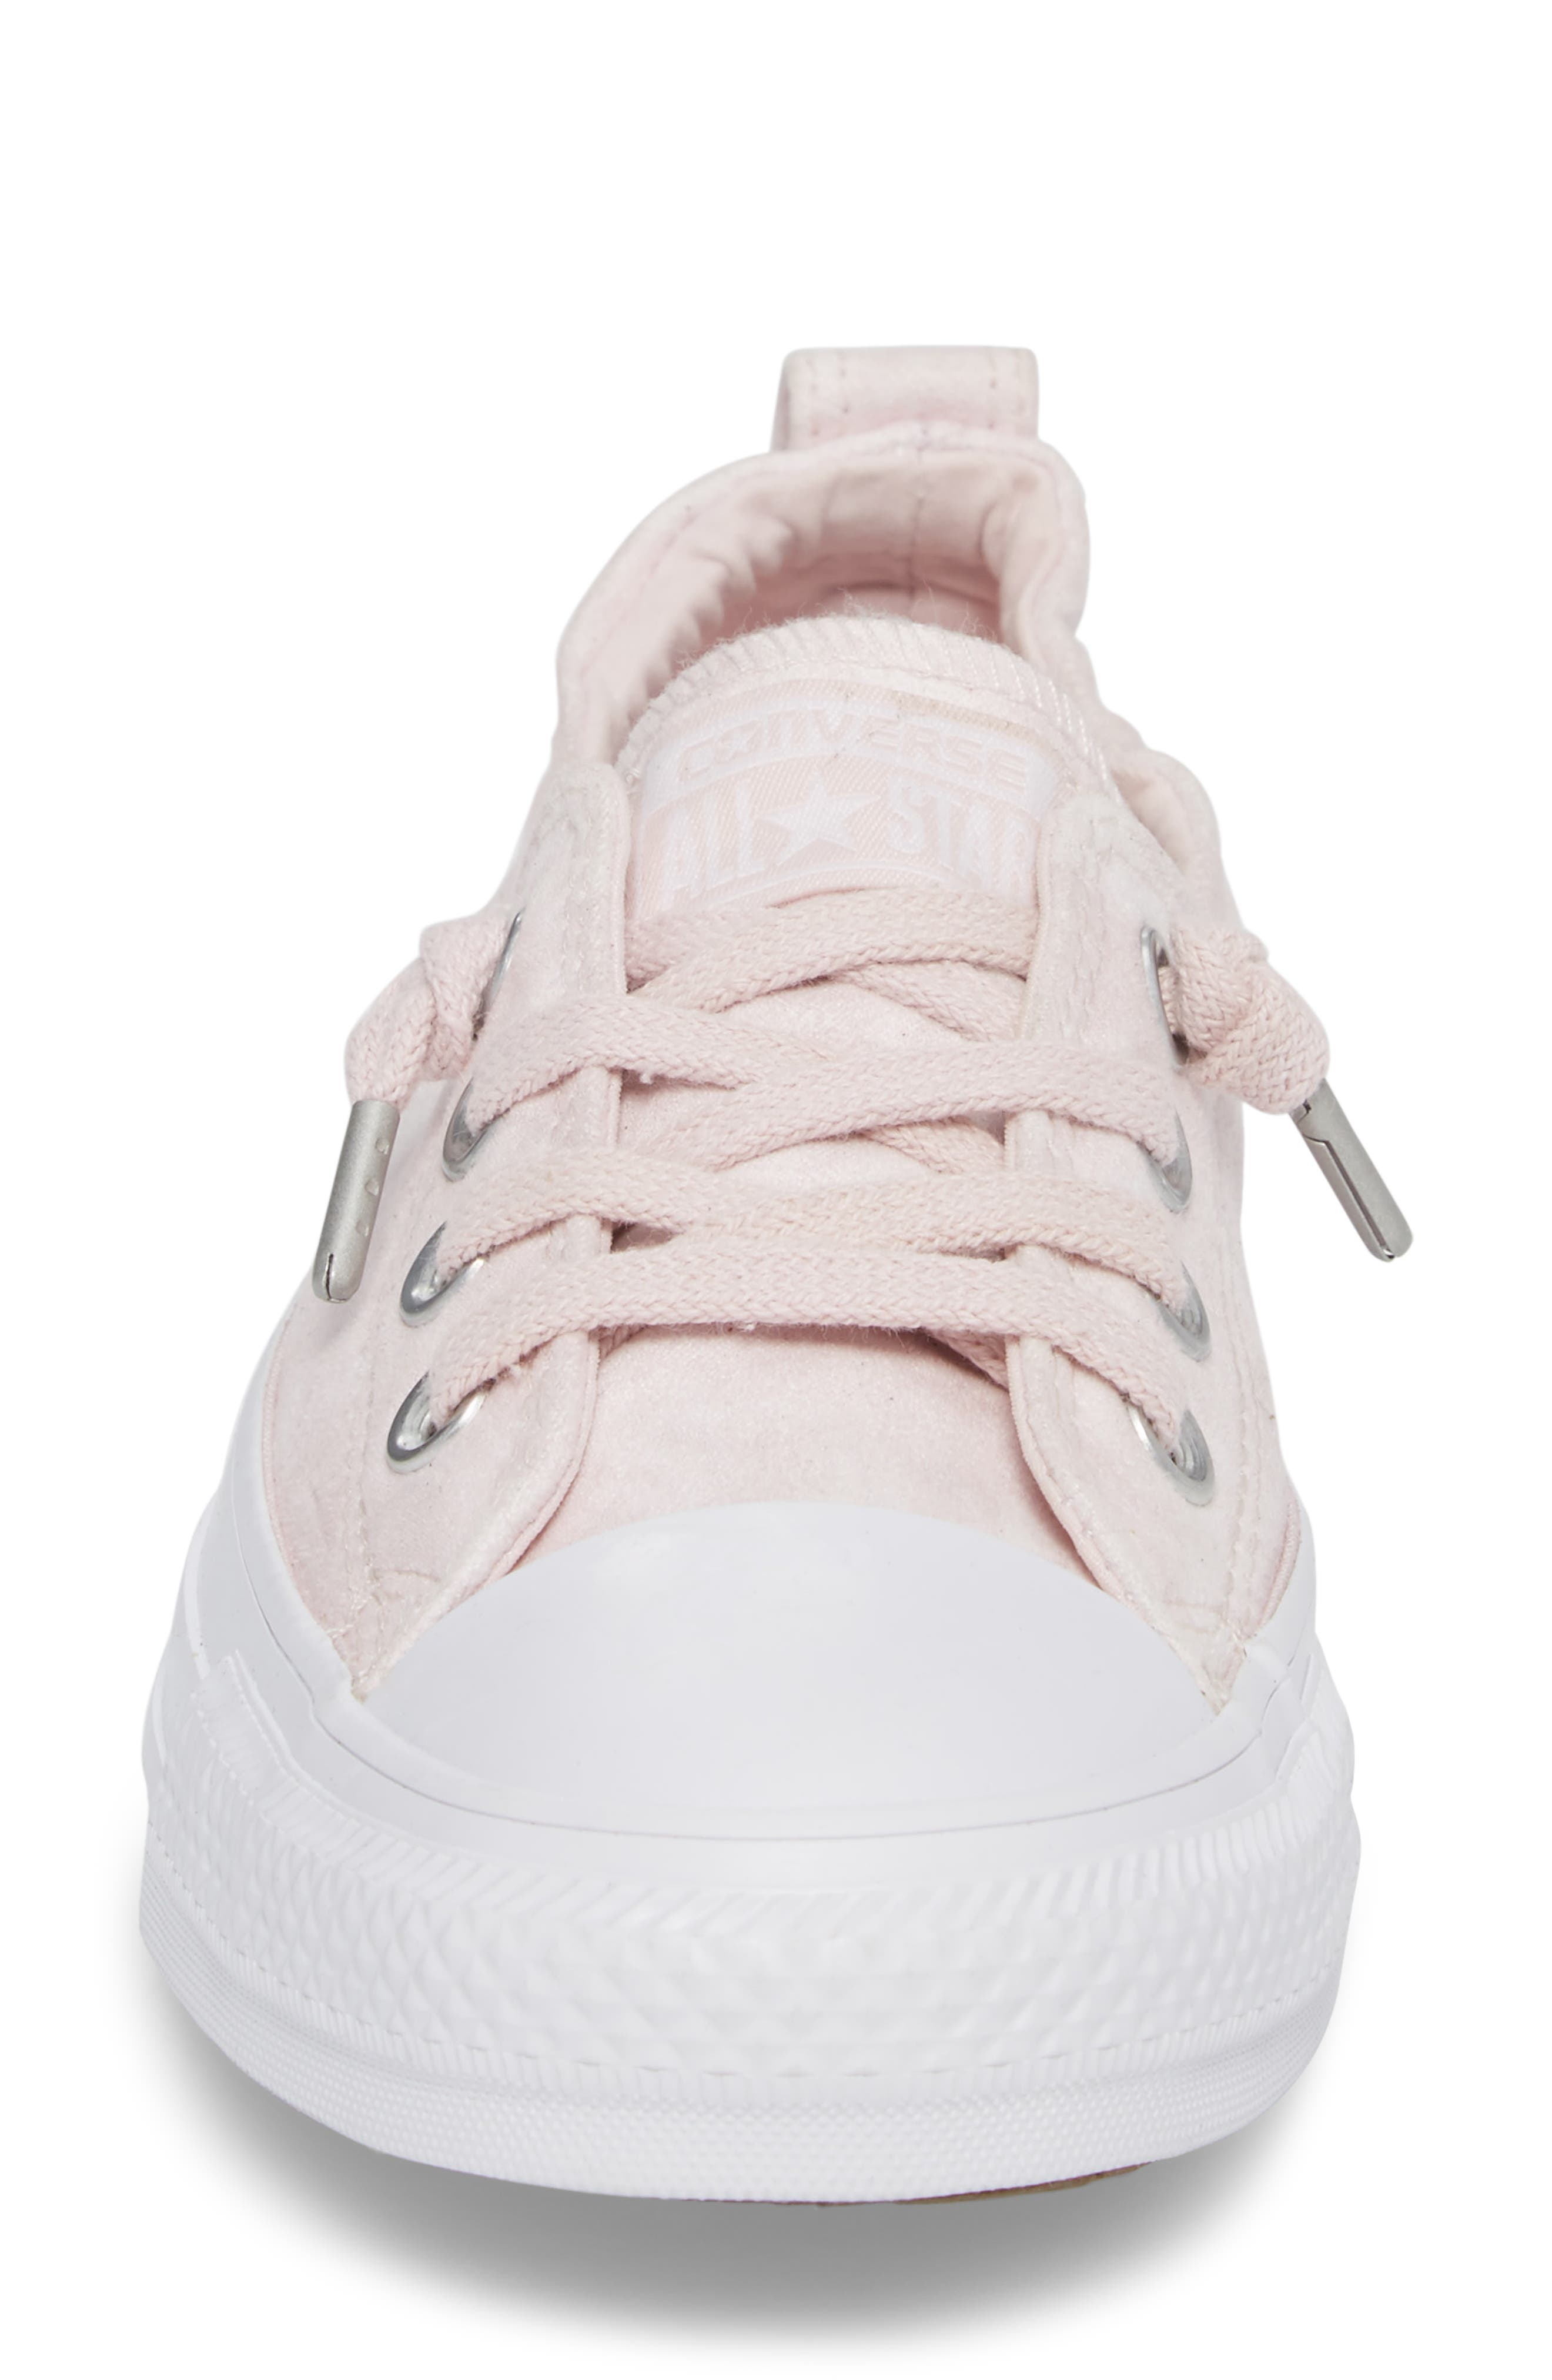 Chuck Taylor<sup>®</sup> All Star<sup>®</sup> Shoreline Peached Twill Sneaker,                             Alternate thumbnail 4, color,                             Barely Rose